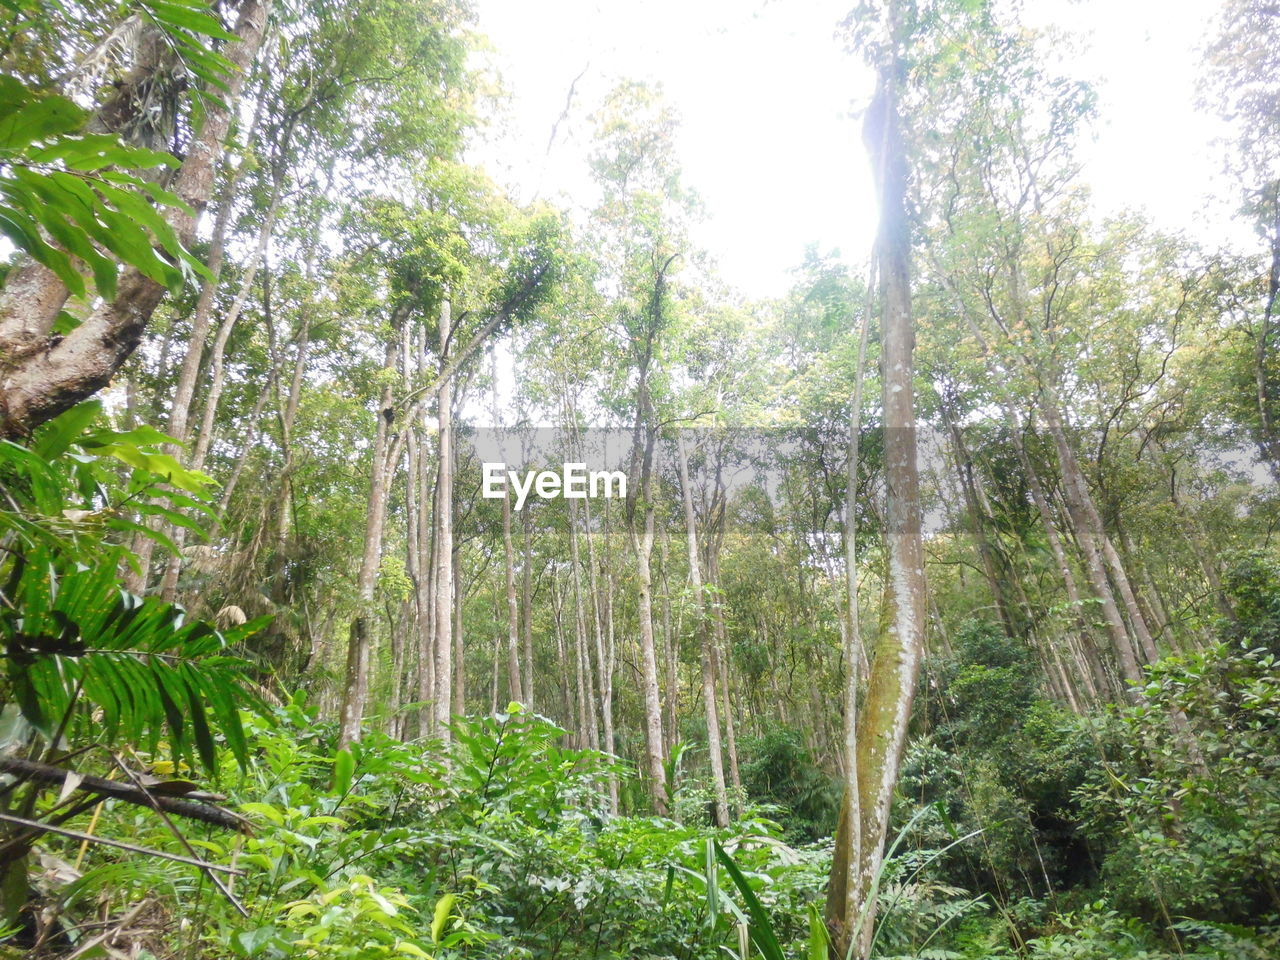 plant, tree, forest, growth, land, tranquility, beauty in nature, nature, day, scenics - nature, tranquil scene, no people, green color, woodland, non-urban scene, environment, tree trunk, outdoors, trunk, lush foliage, rainforest, bamboo - plant